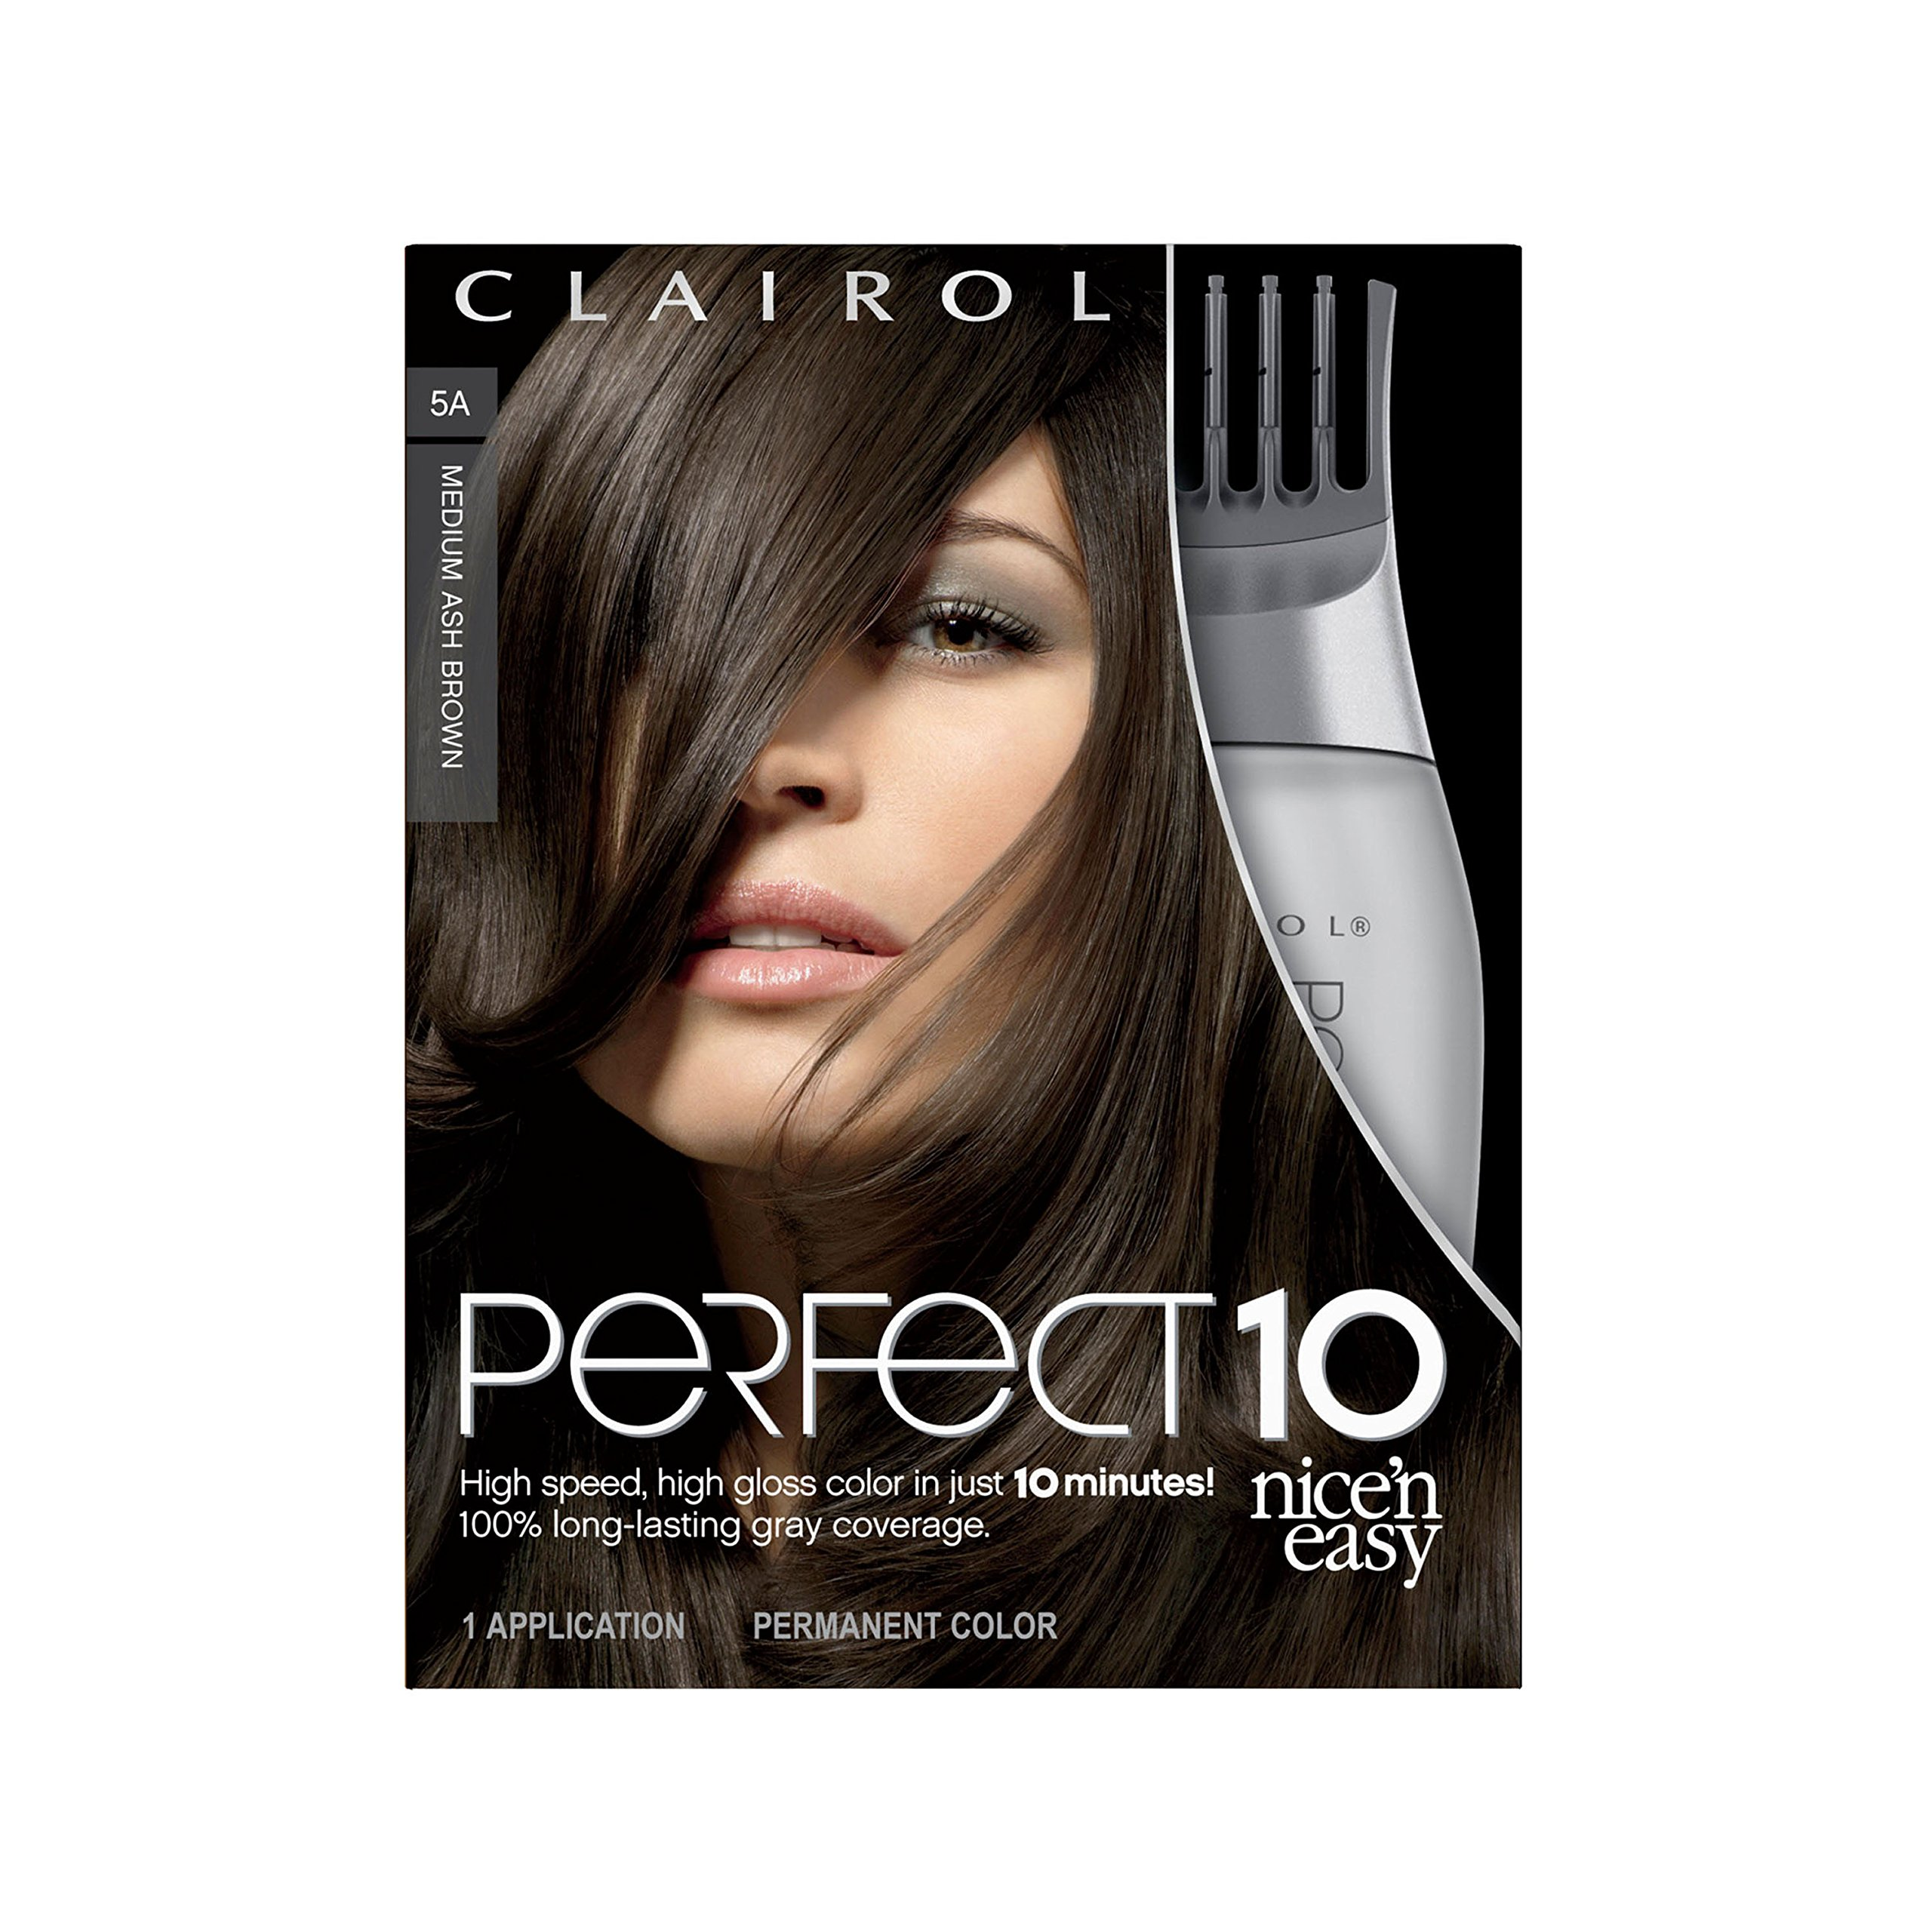 Clairol Perfect 10 By Nice 'N Easy Hair Color Kit (Pack of 2), 005A Medium Ash Brown, Includes Comb Applicator, Lasts Up To 60 Days by Clairol (Image #1)